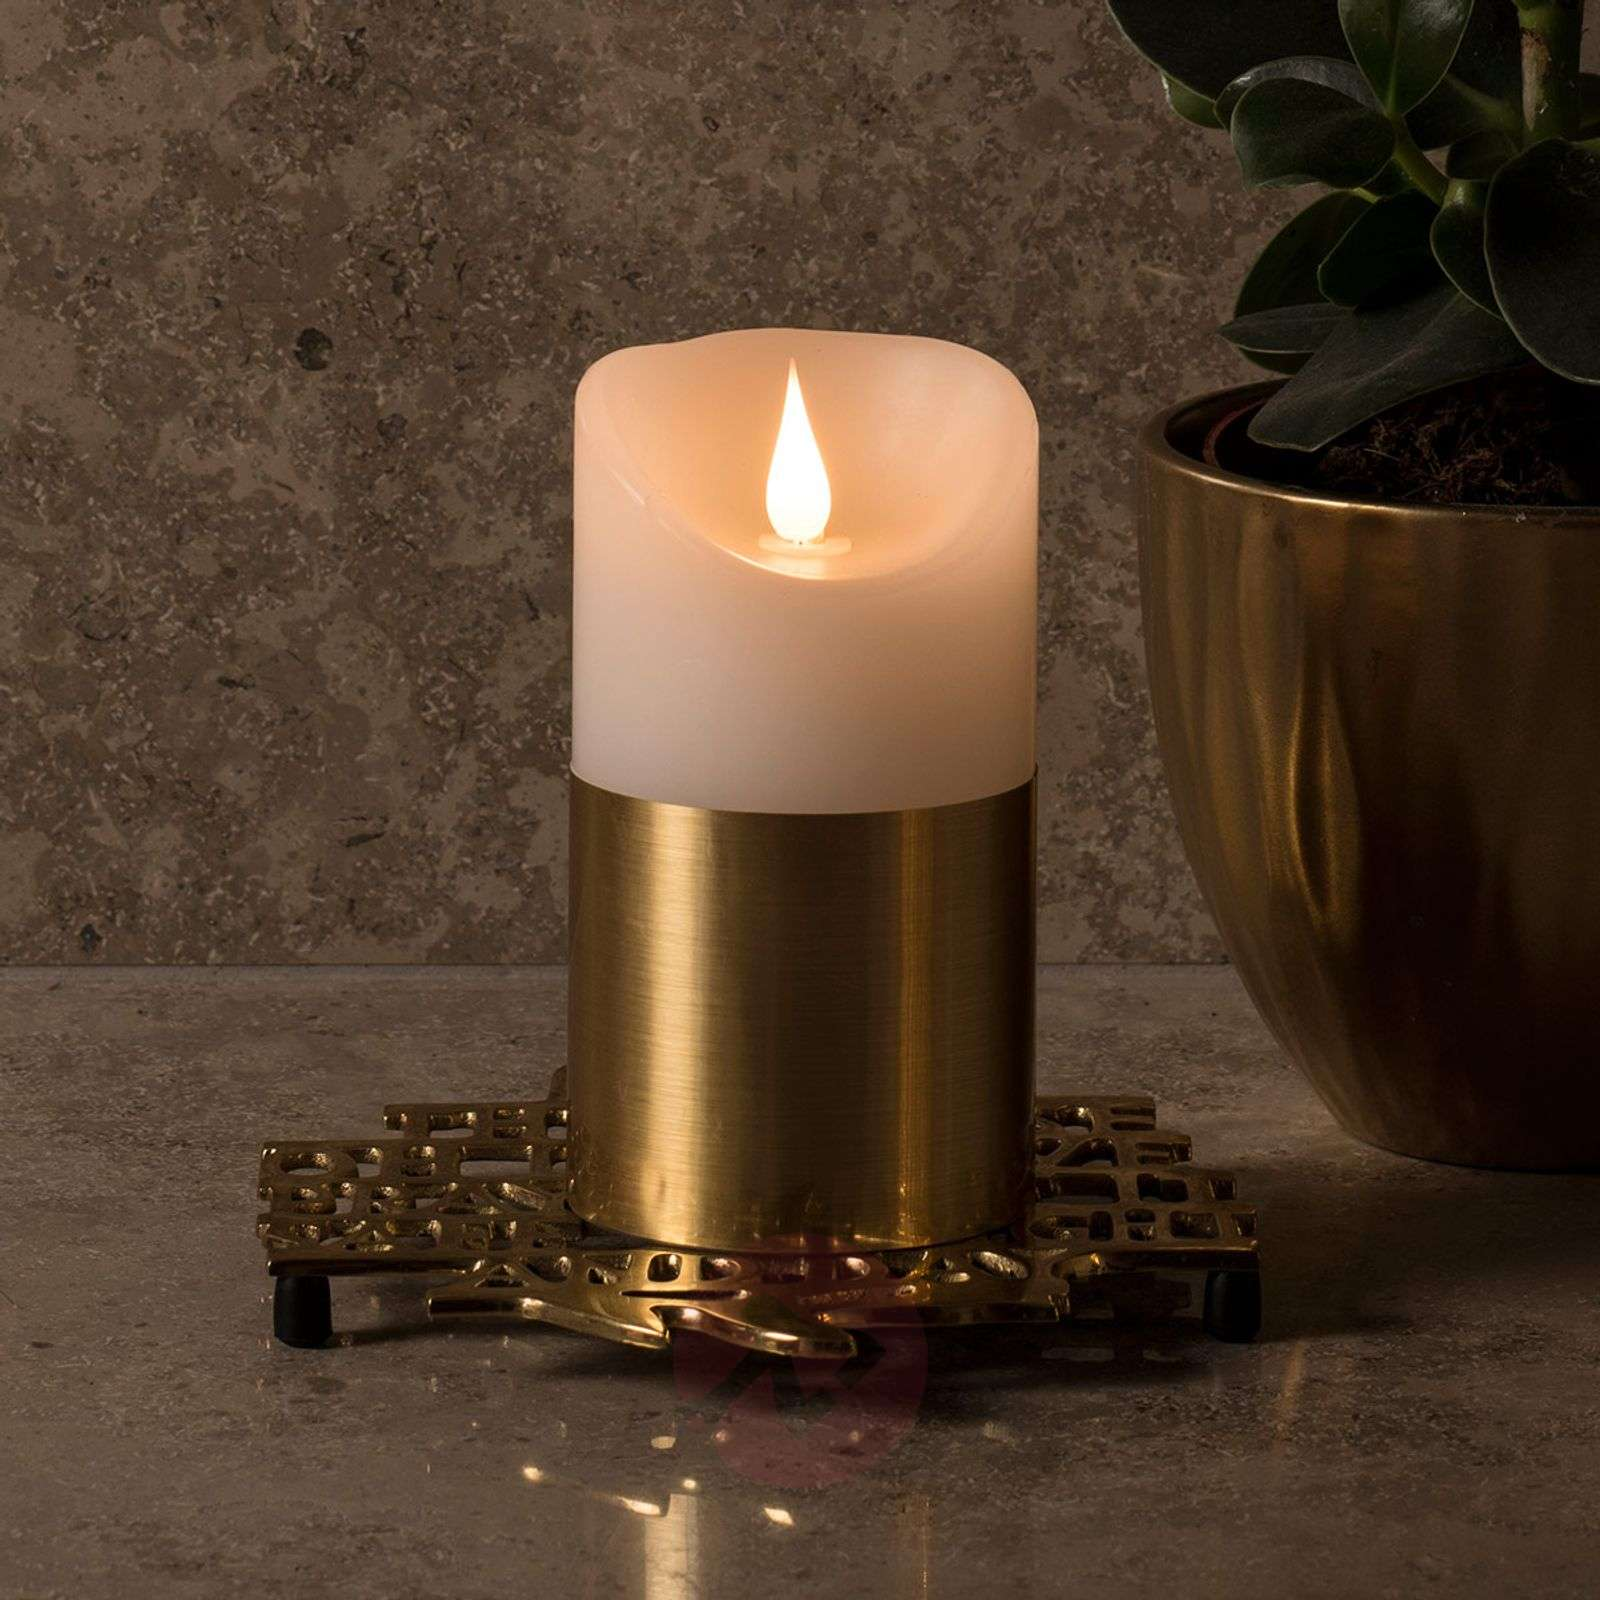 Brass-coloured sleeve LED wax candle-5524855X-01